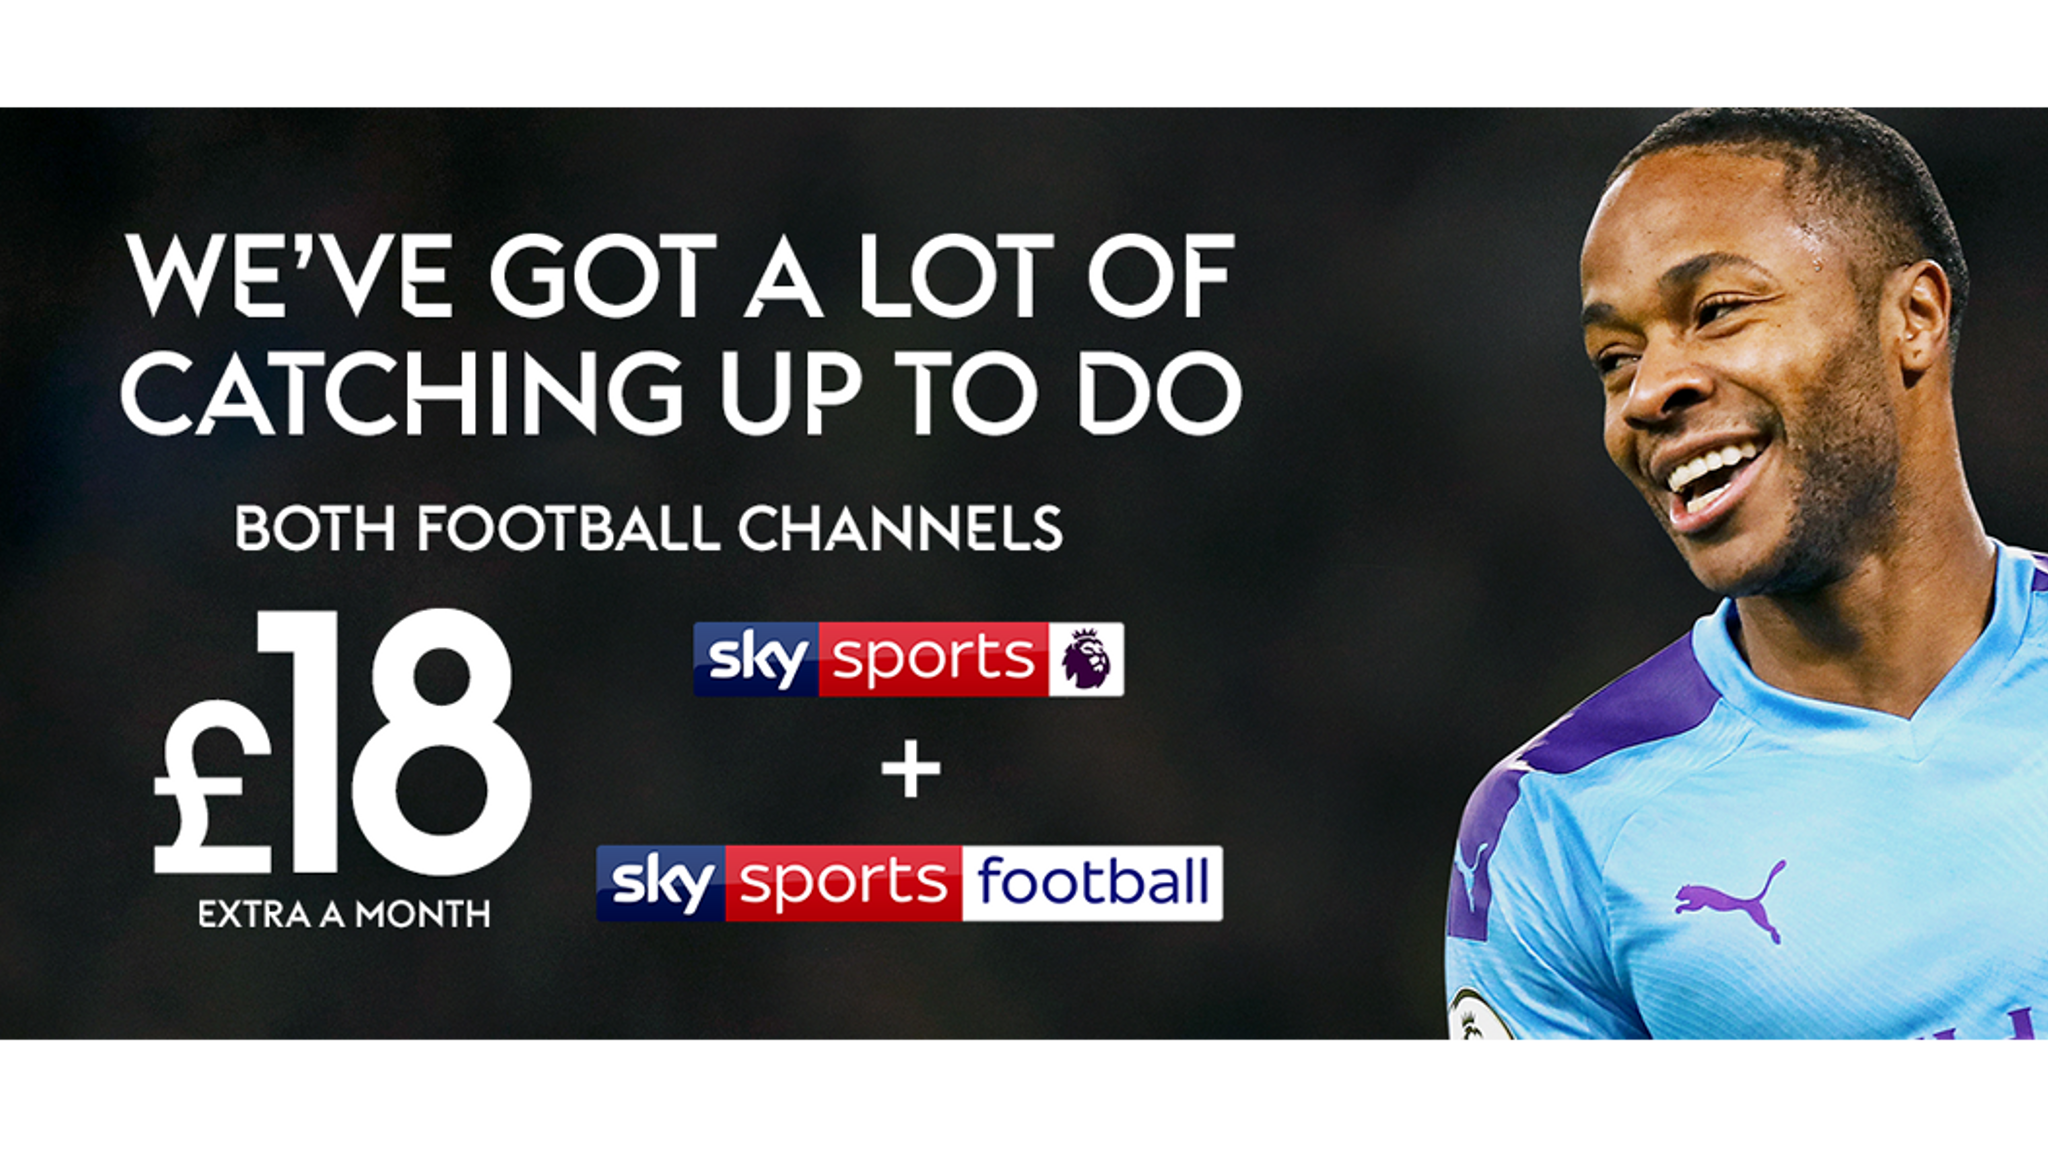 Premier League Restart How To Get Sky Sports To Watch The Action